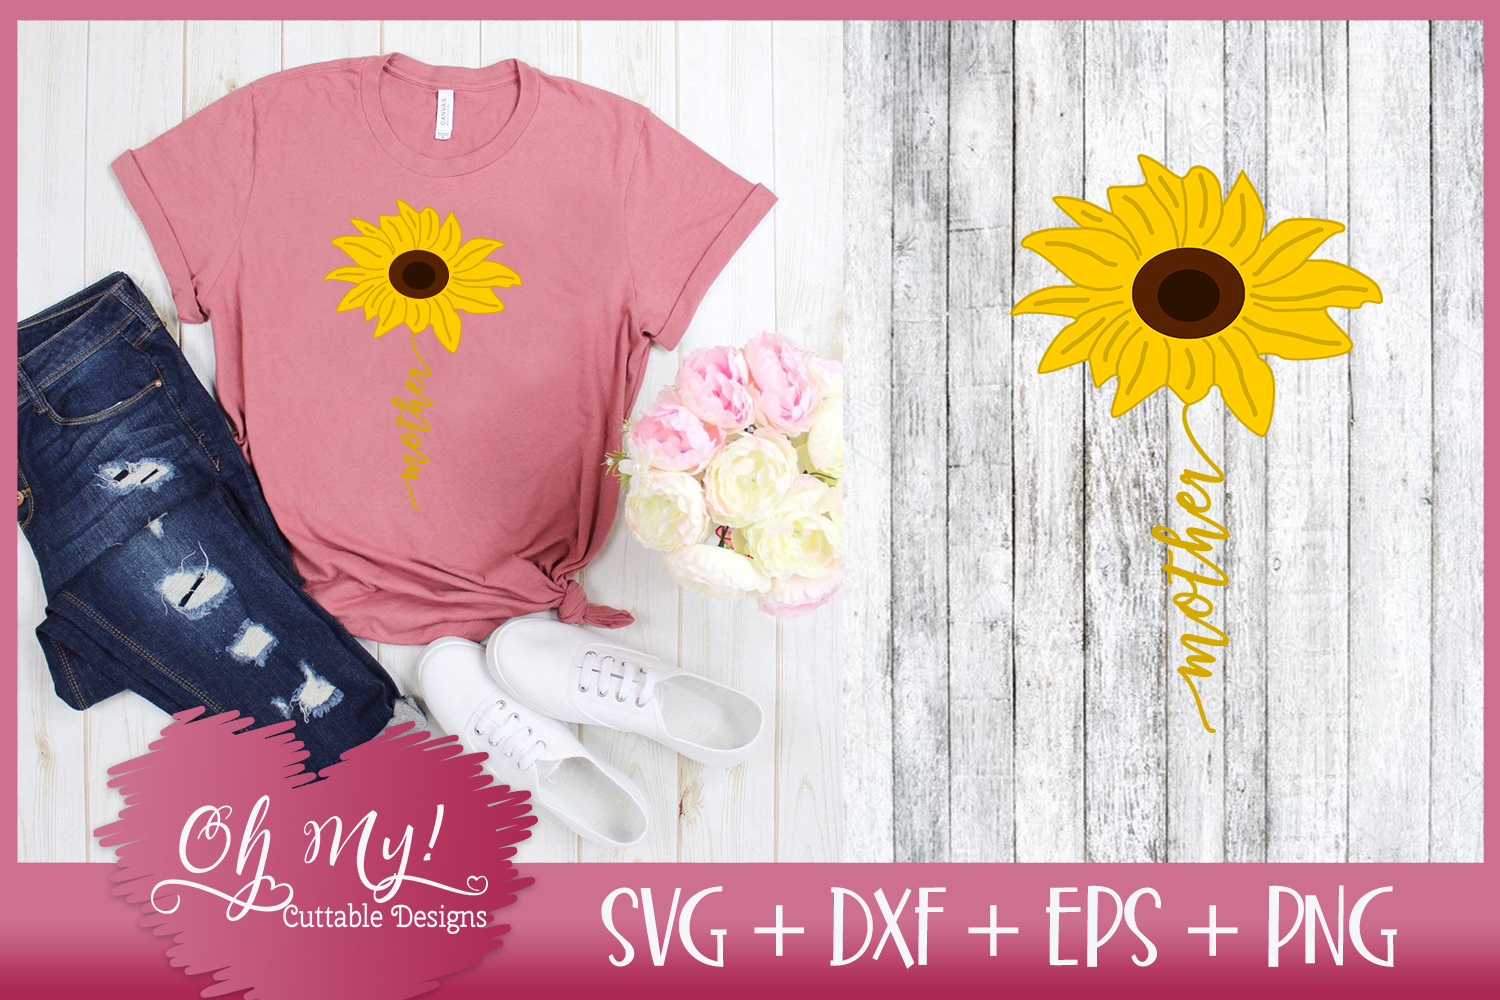 Mother Sunflower - SVG EPS DXF PNG Cutting File example image 3